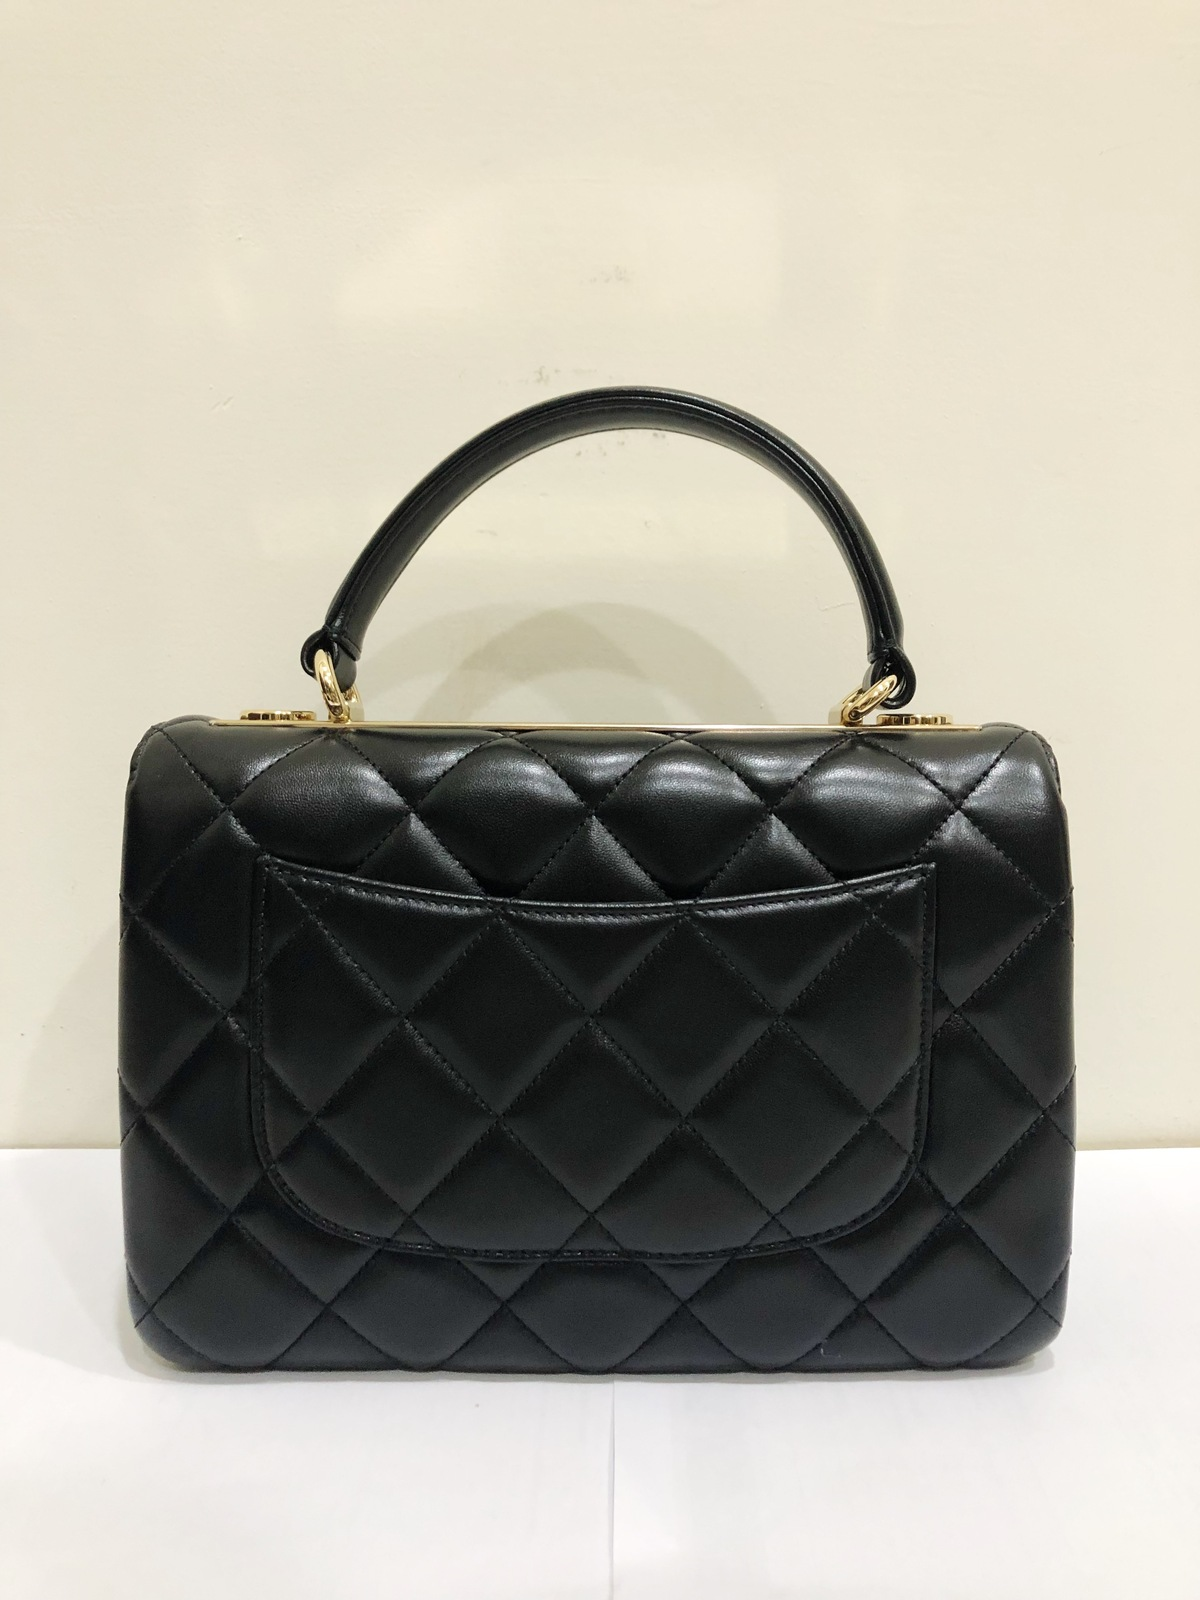 720fe7fe9344 AUTHENTIC CHANEL BLACK QUILTED LAMBSKIN TRENDY CC 2 WAY HANDLE FLAP ...